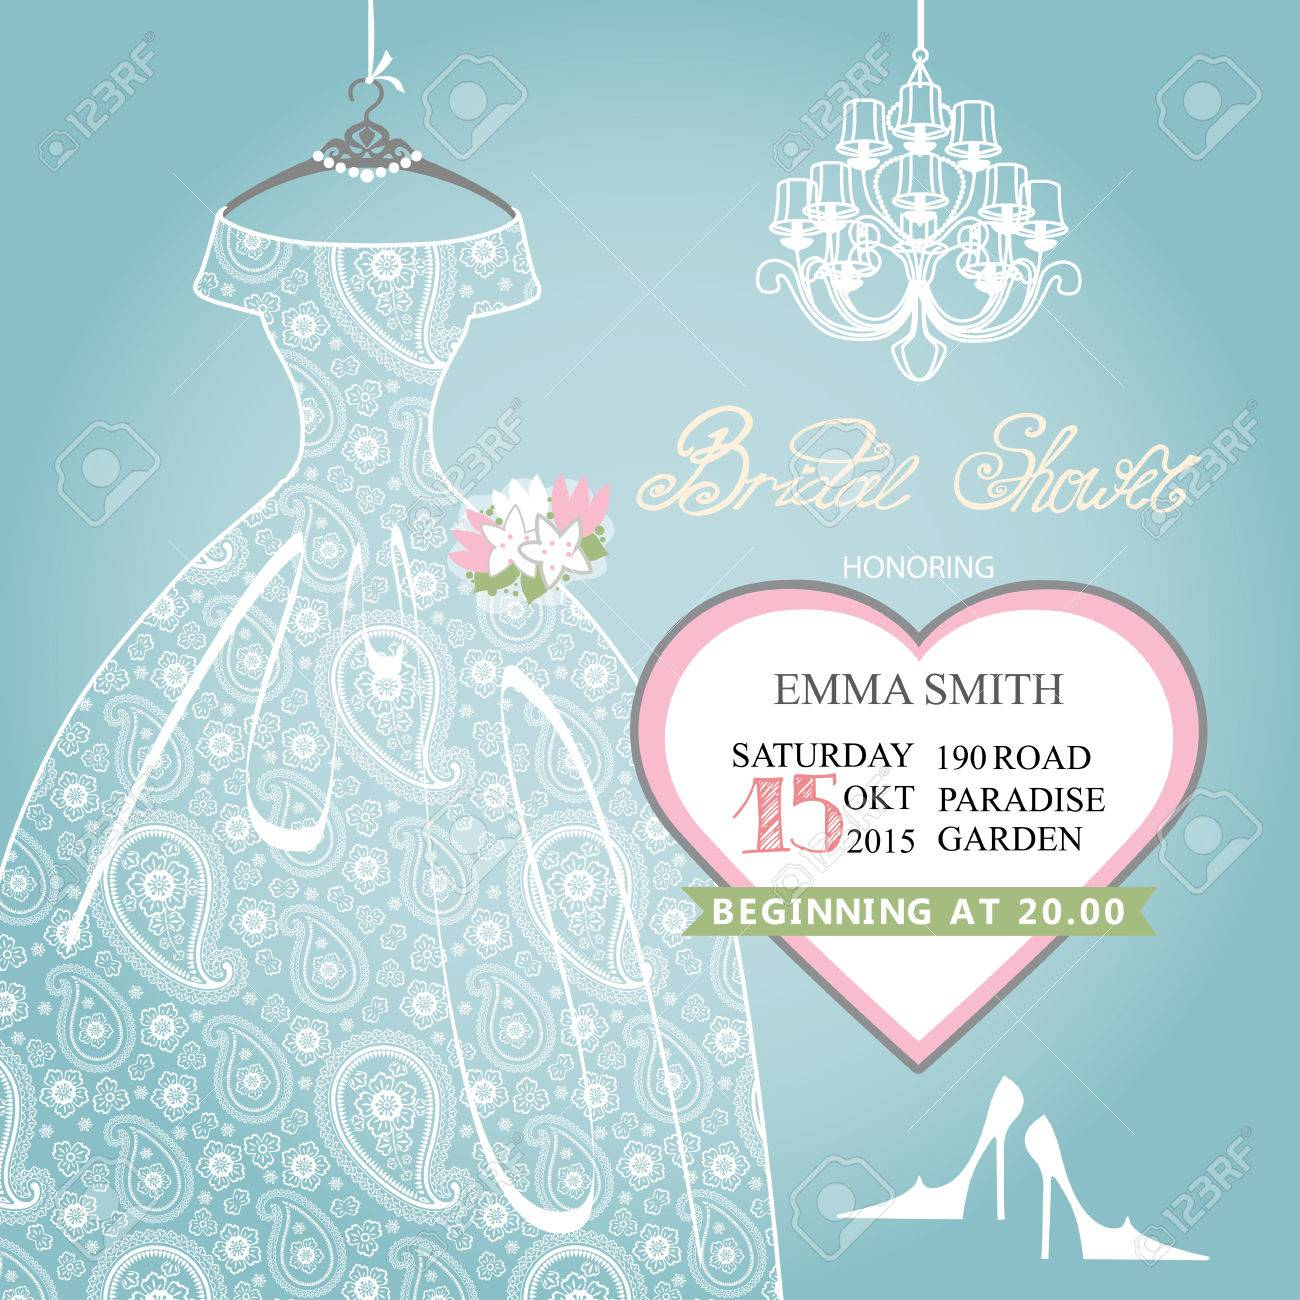 Old Fashioned Wedding Dress Bridal Shower Invitations Sketch All